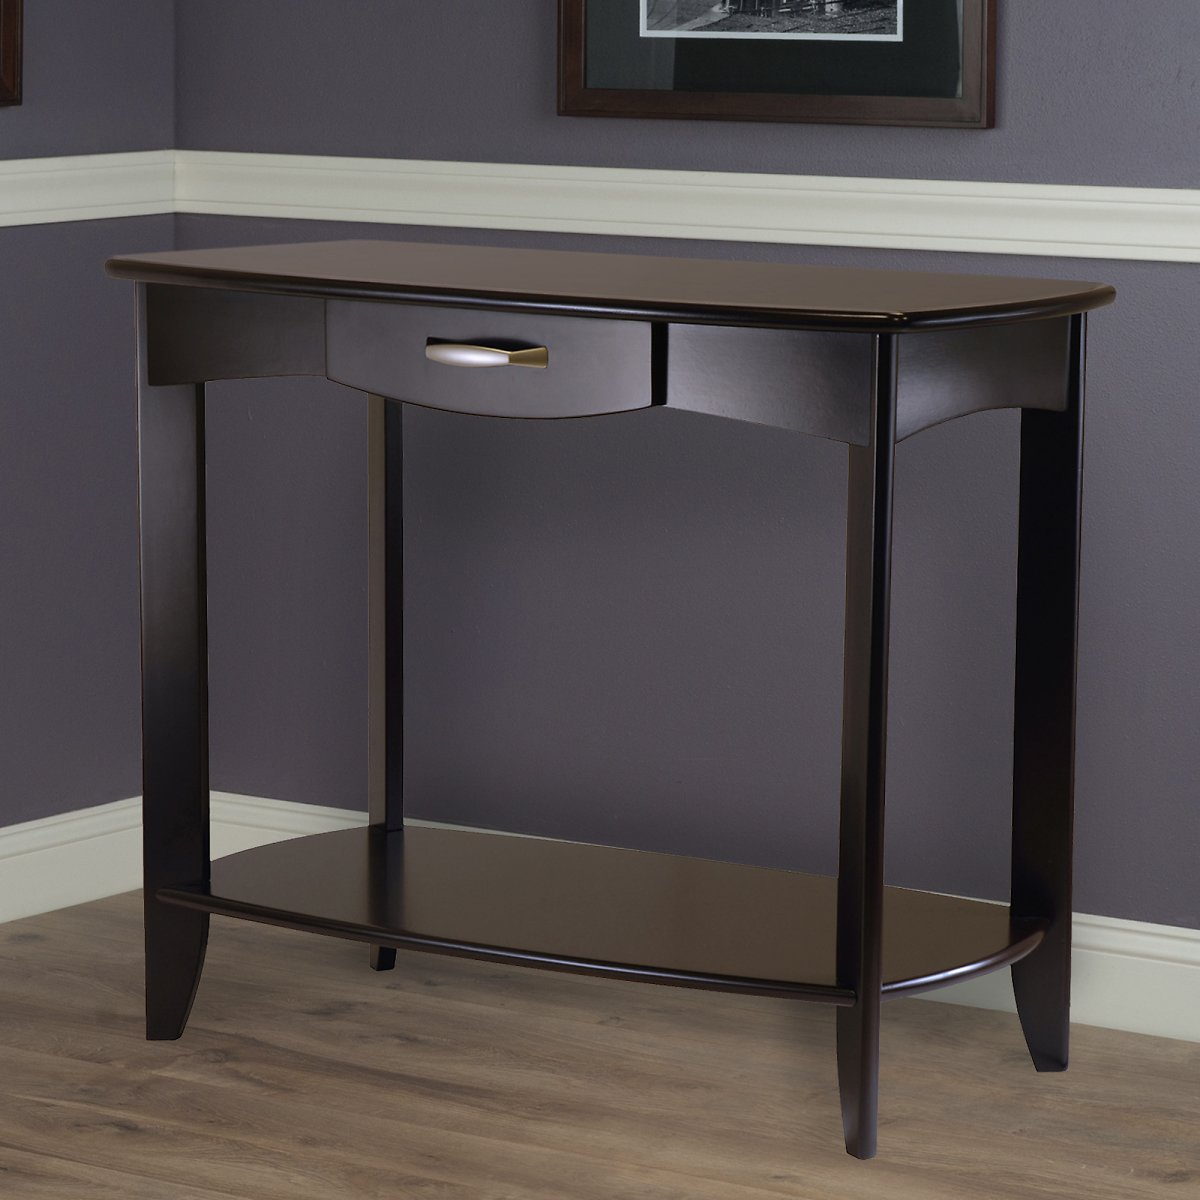 Winsome Wood Danica Console Table with Drawer, Espresso Finish